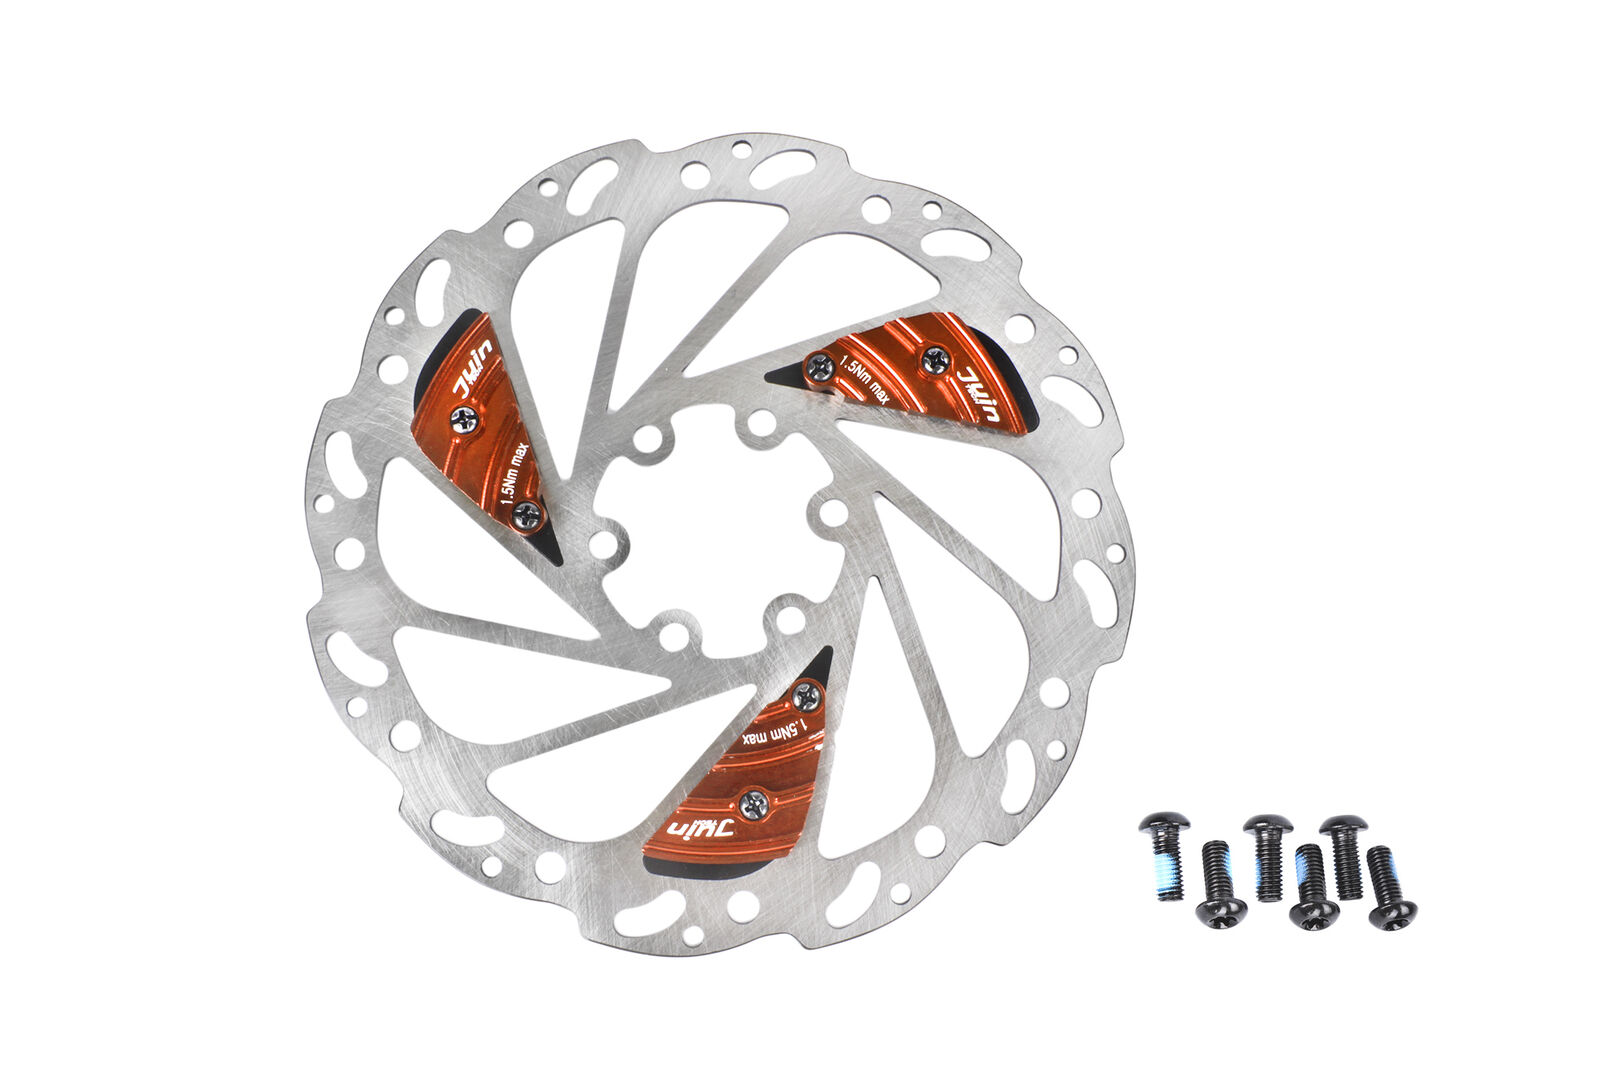 Juin Tech RO30 Mountain CX Bicycle Bike Disc Brake Vent-Vane Vent-Vane Vent-Vane rojoor 160mm naranja 6bc279